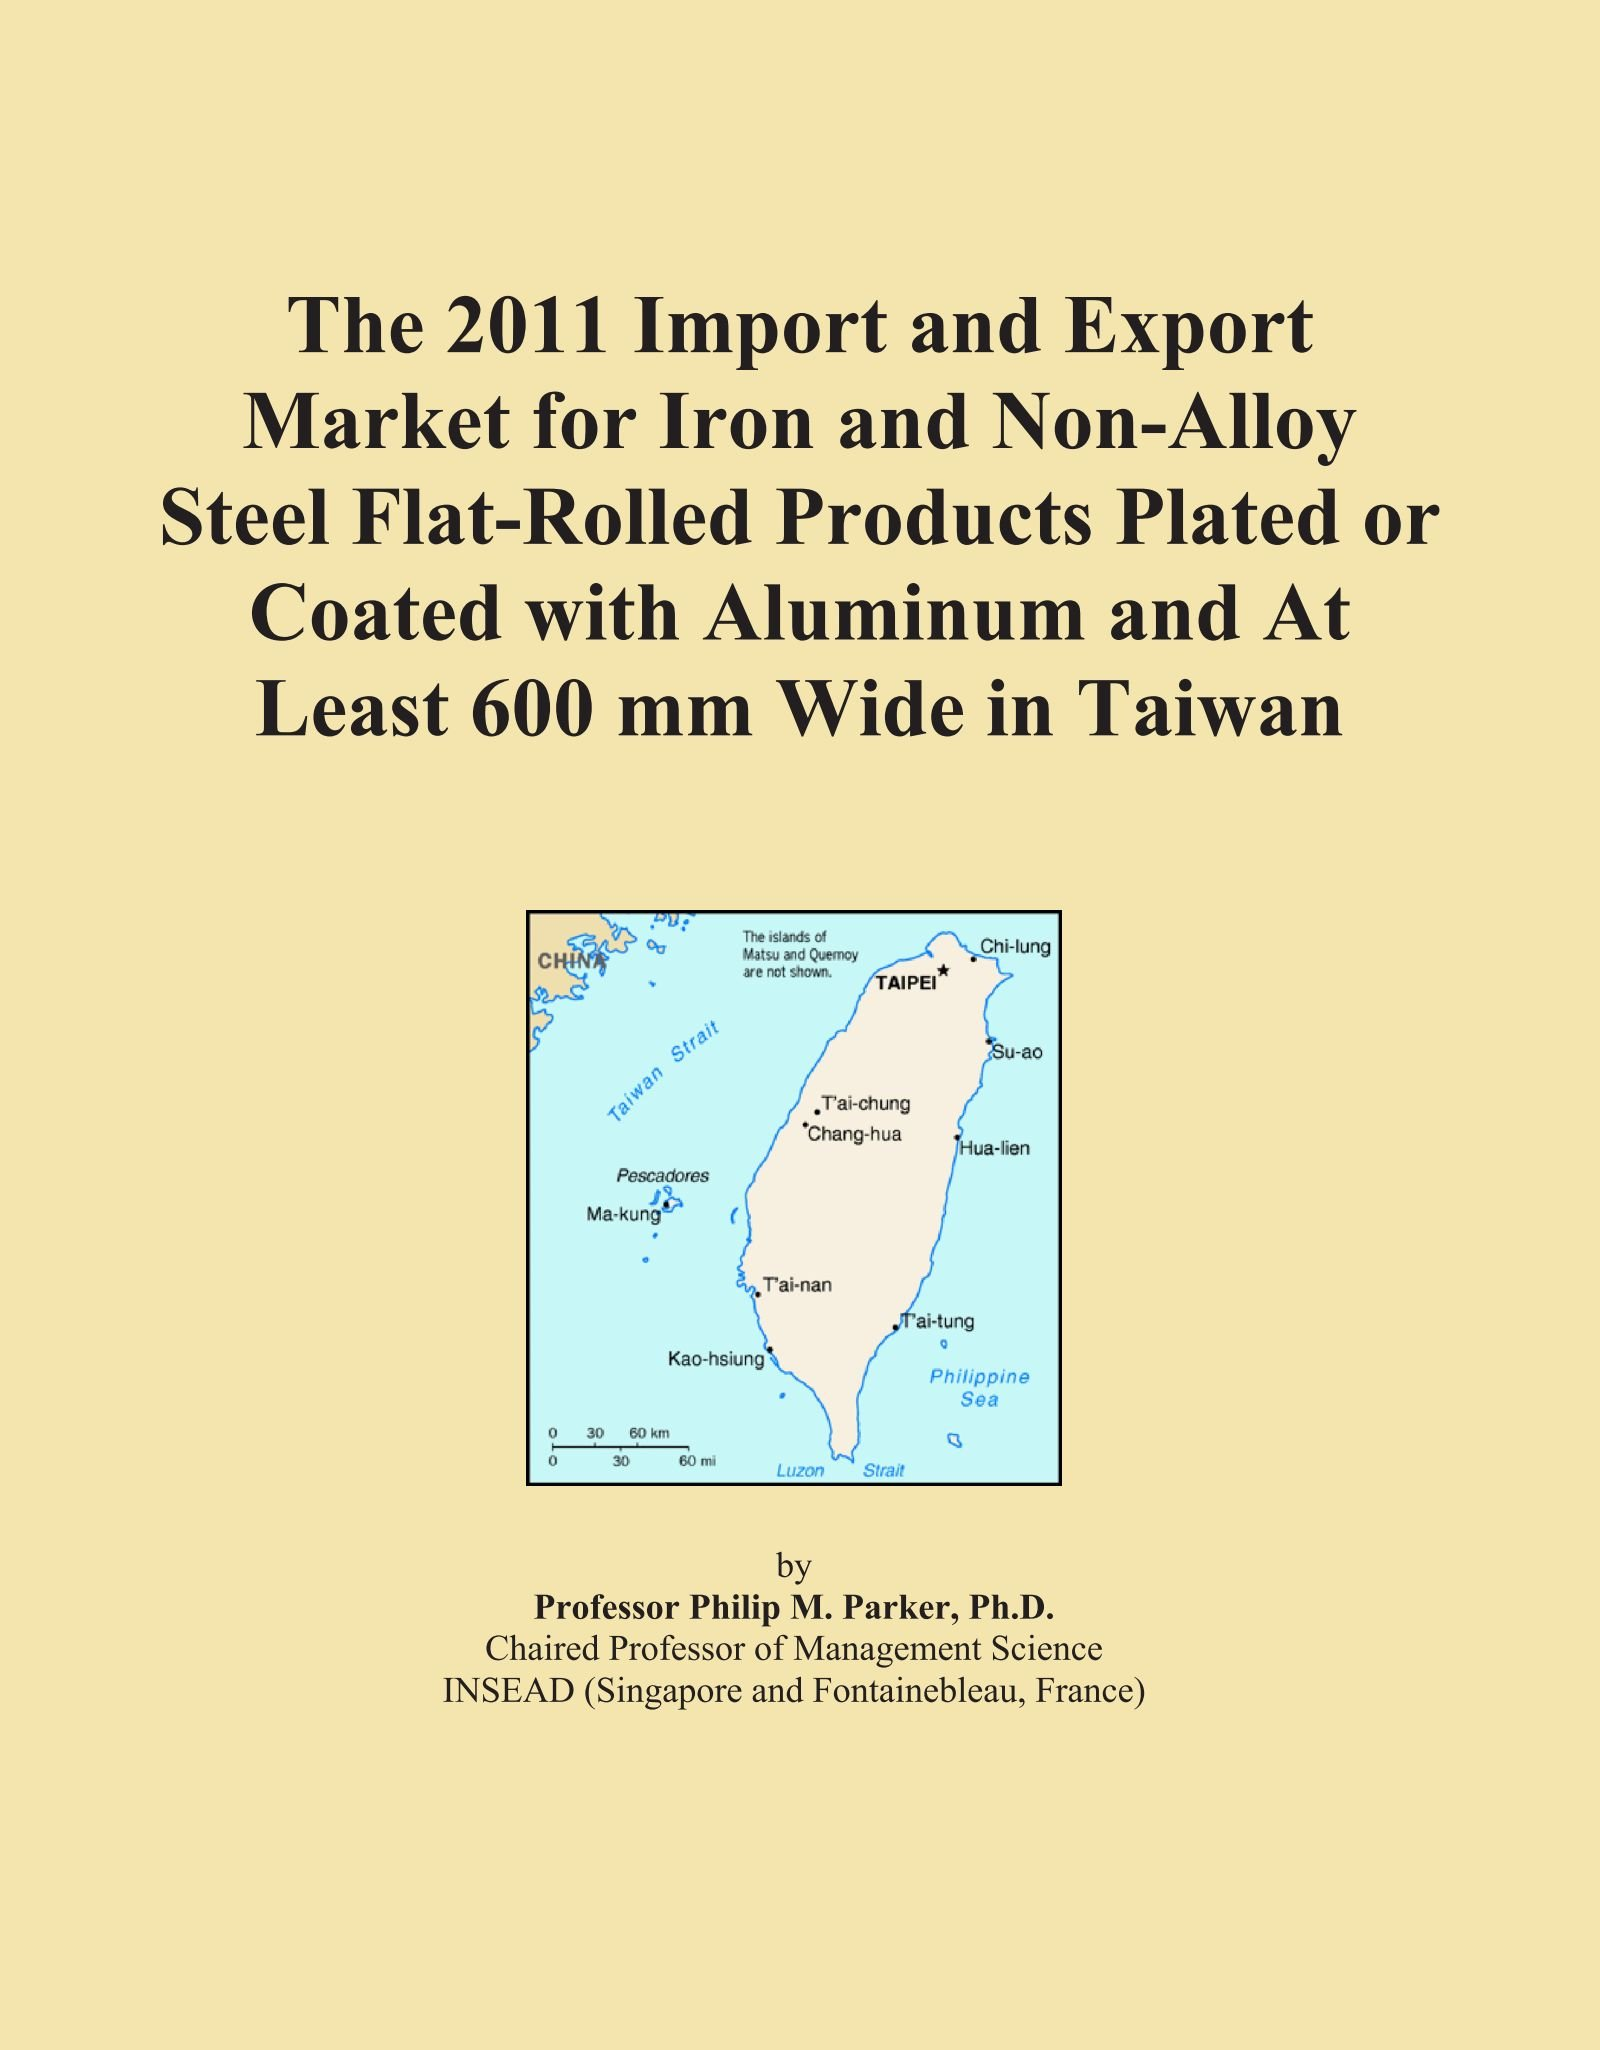 The 2011 Import and Export Market for Iron and Non-Alloy Steel Flat-Rolled Products Plated or Coated with Aluminum and At Least 600 mm Wide in Taiwan ebook